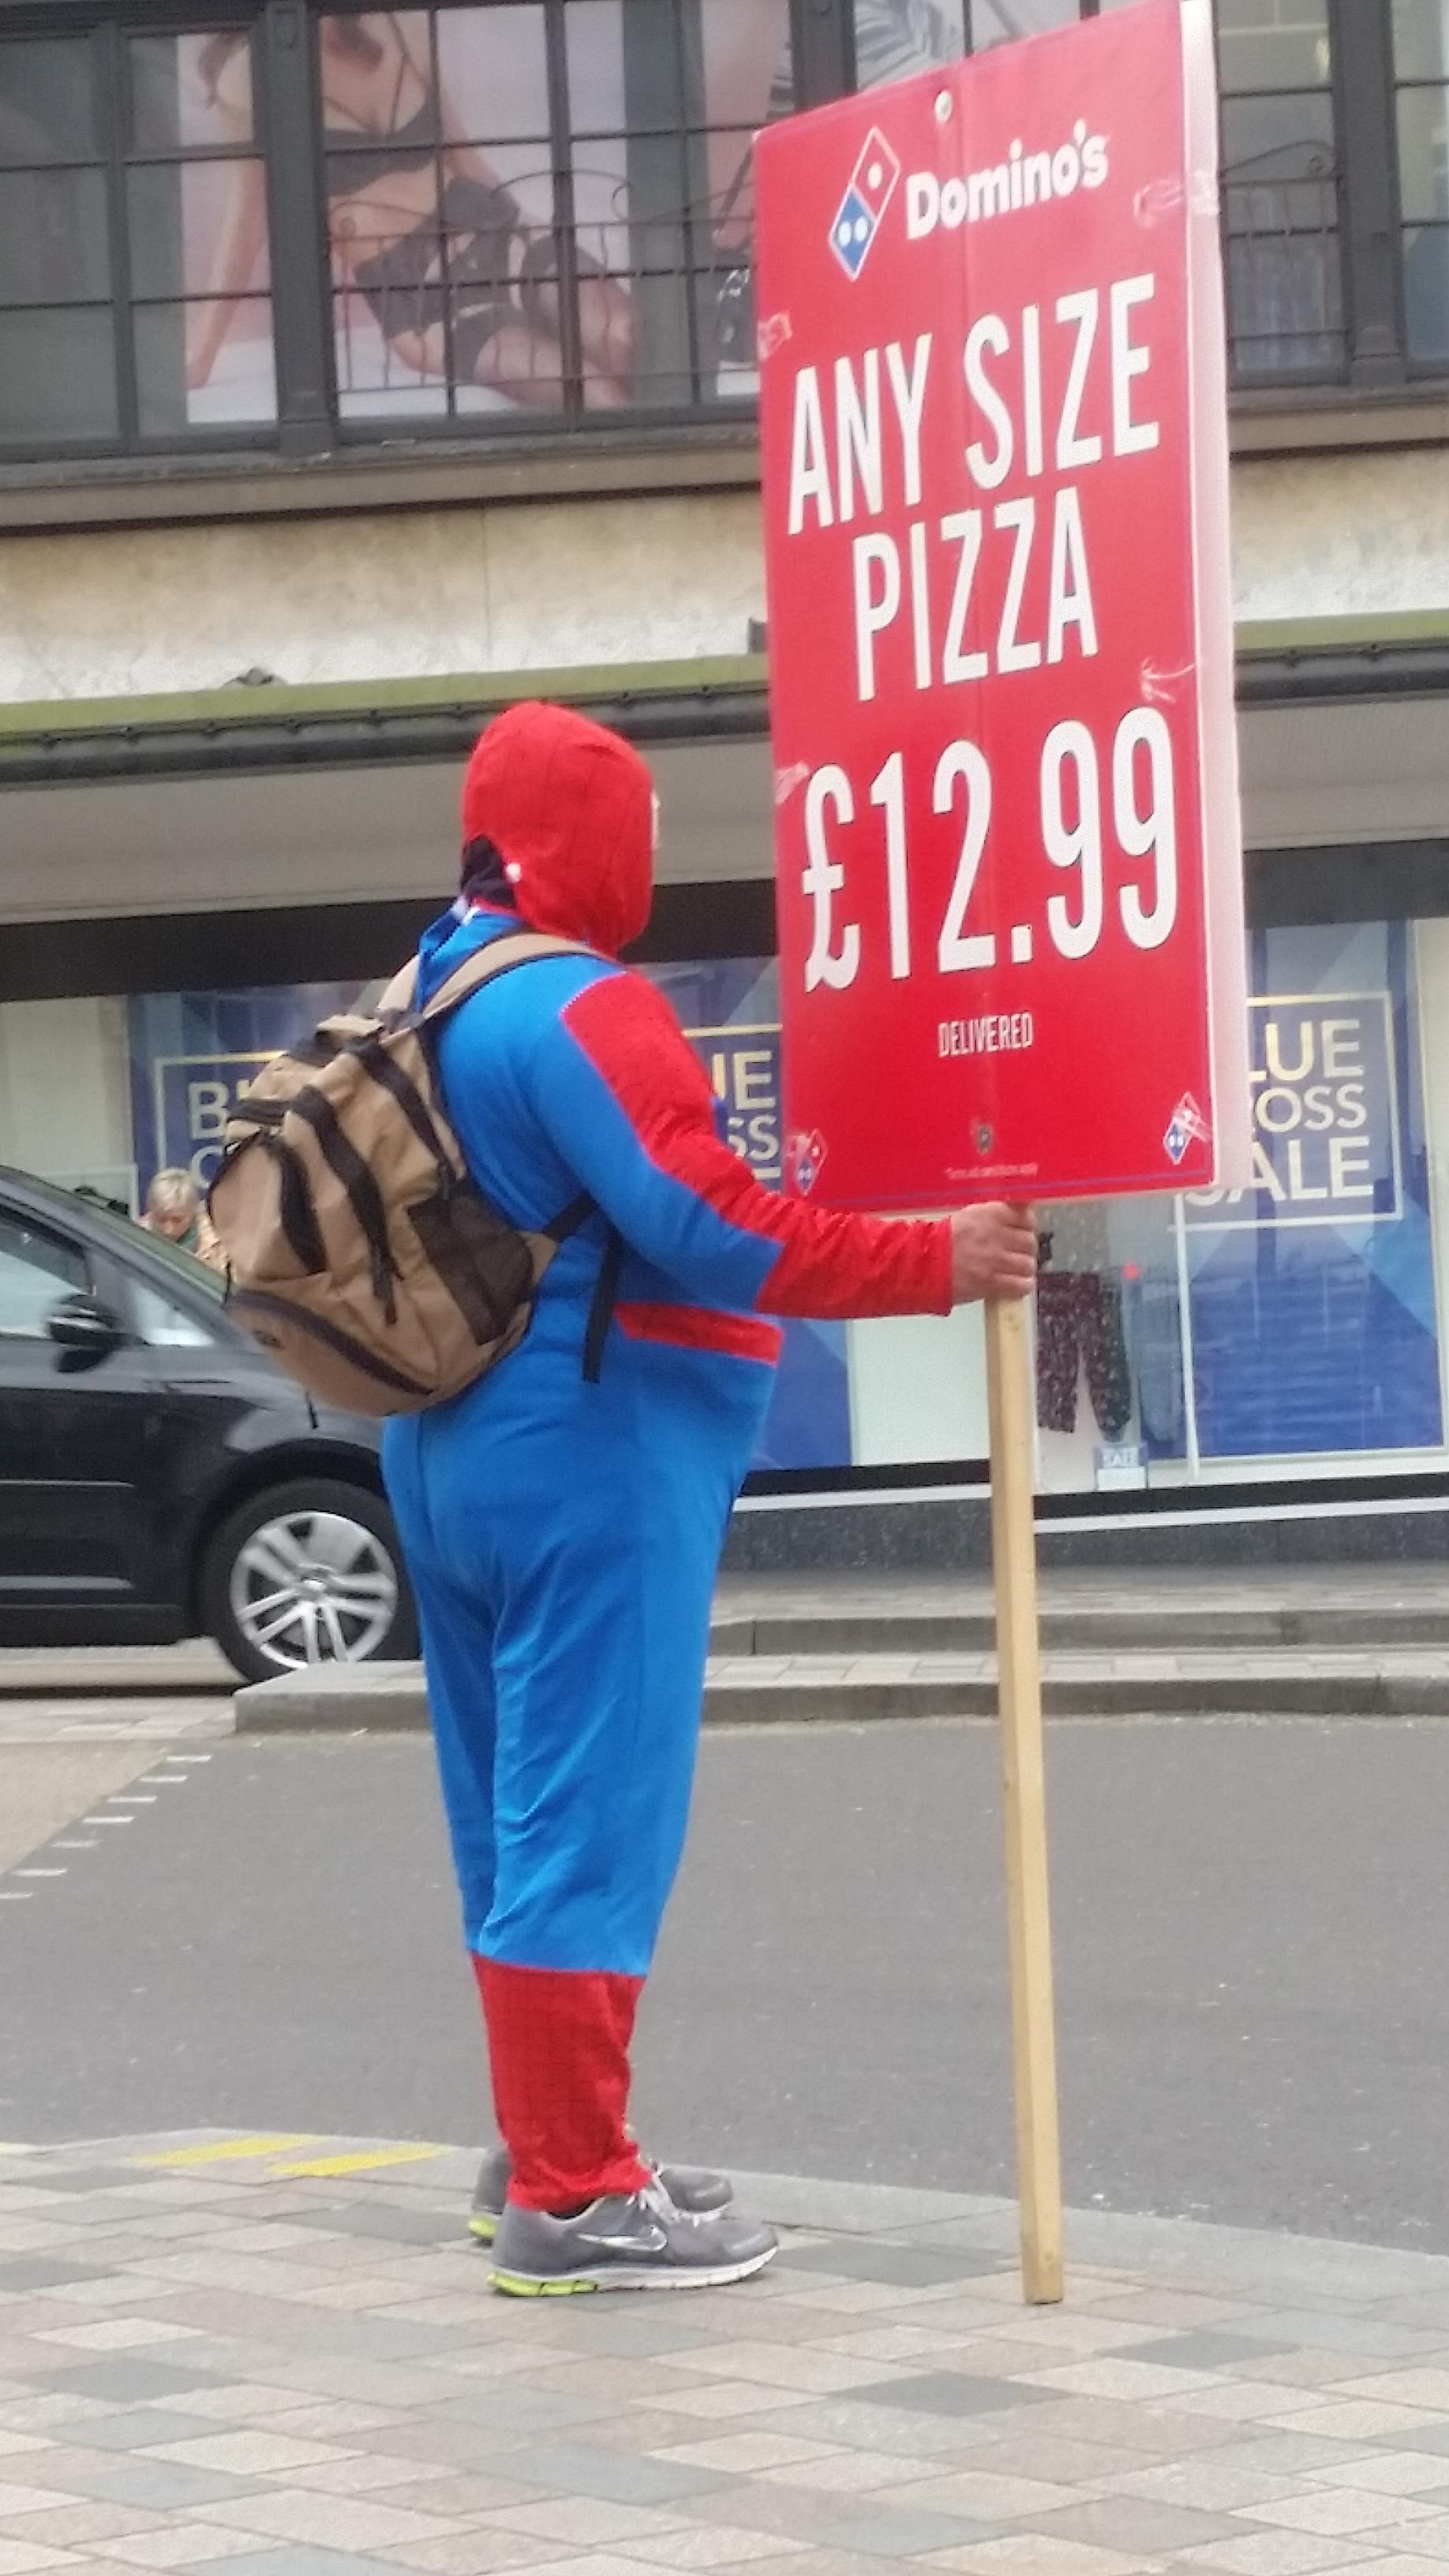 Spiderman has gained some weight since getting a second job at Domino's.